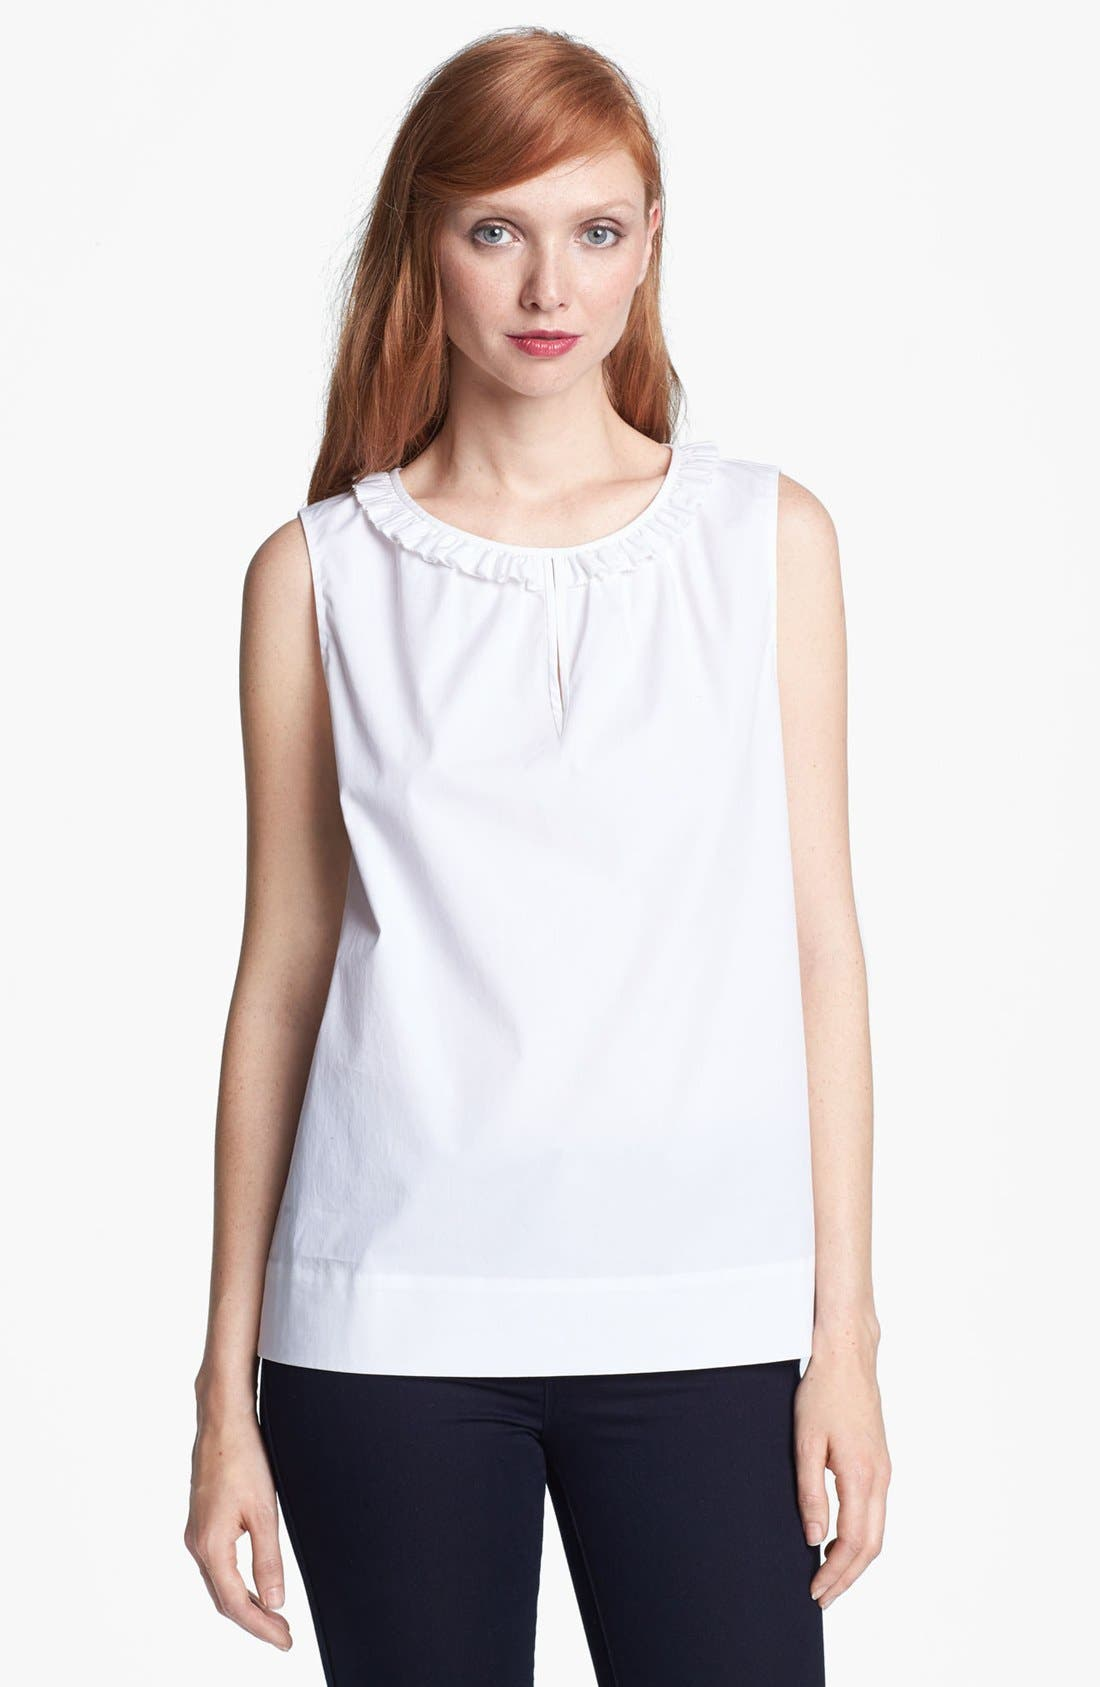 Main Image - kate spade new york 'estella' stretch cotton top